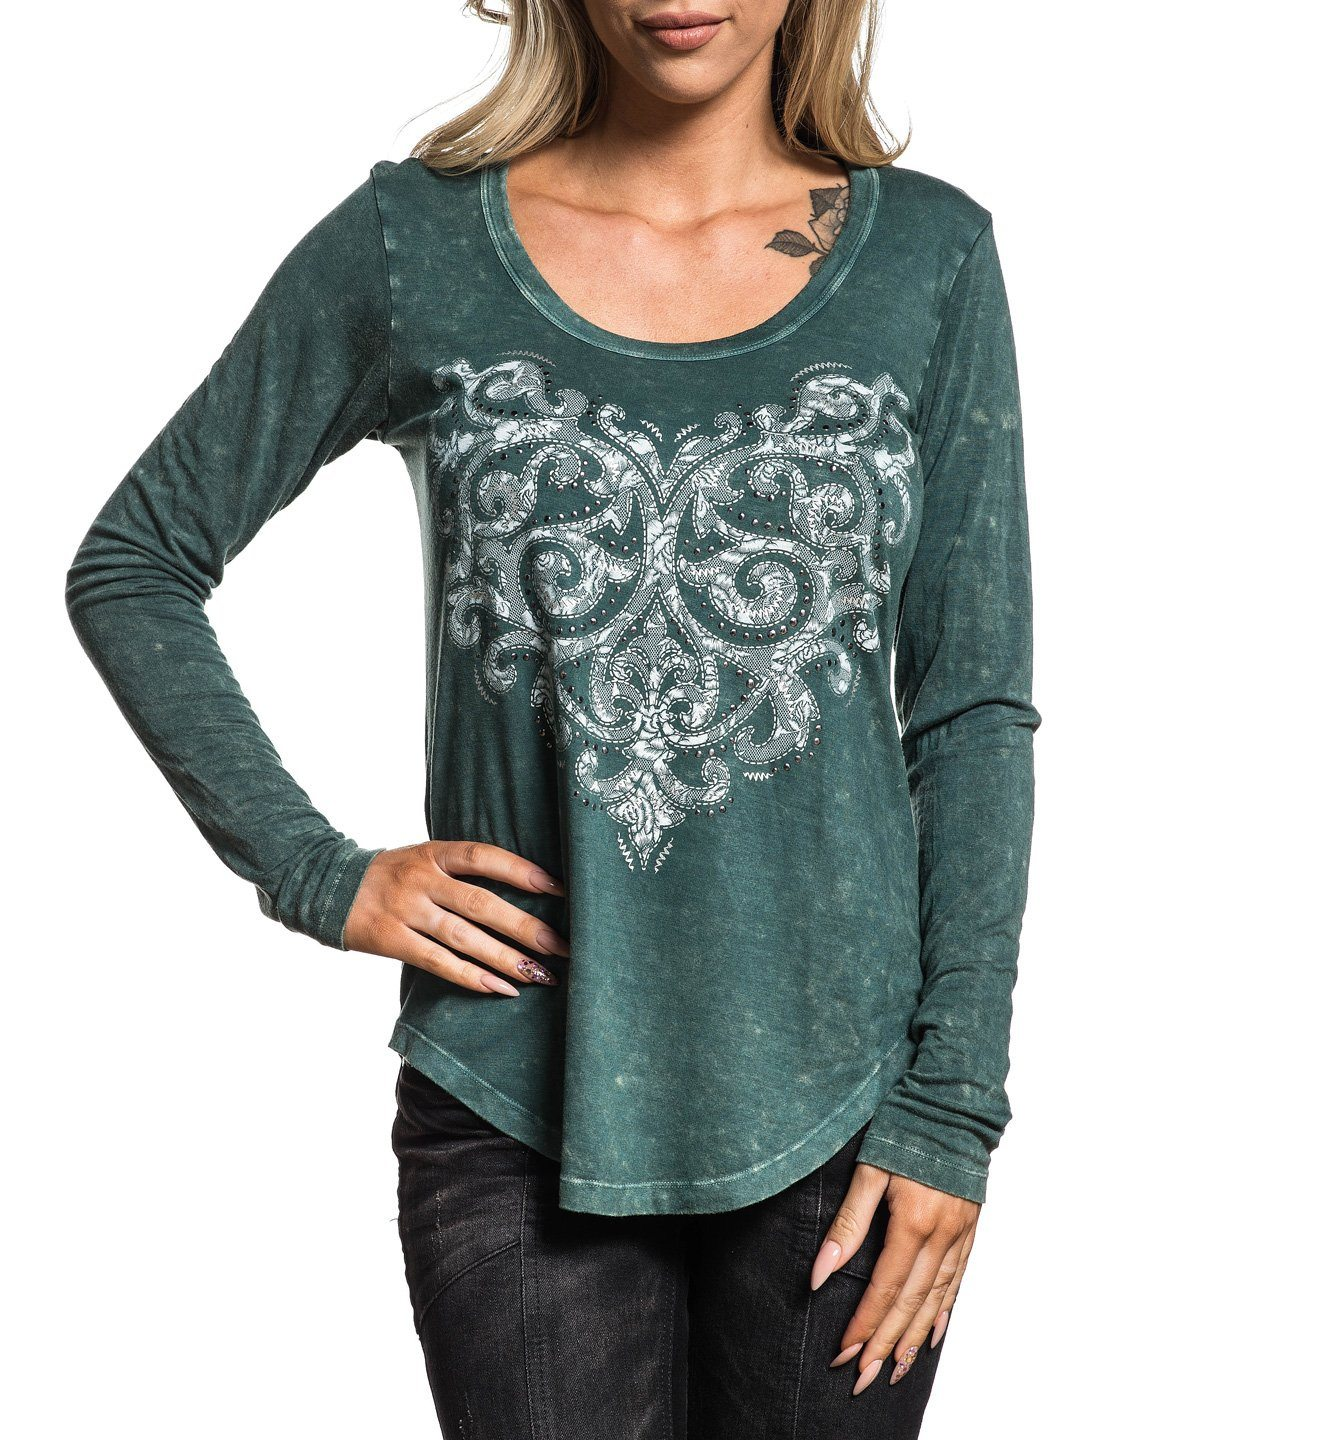 Womens Short Sleeve Tees - Lighten